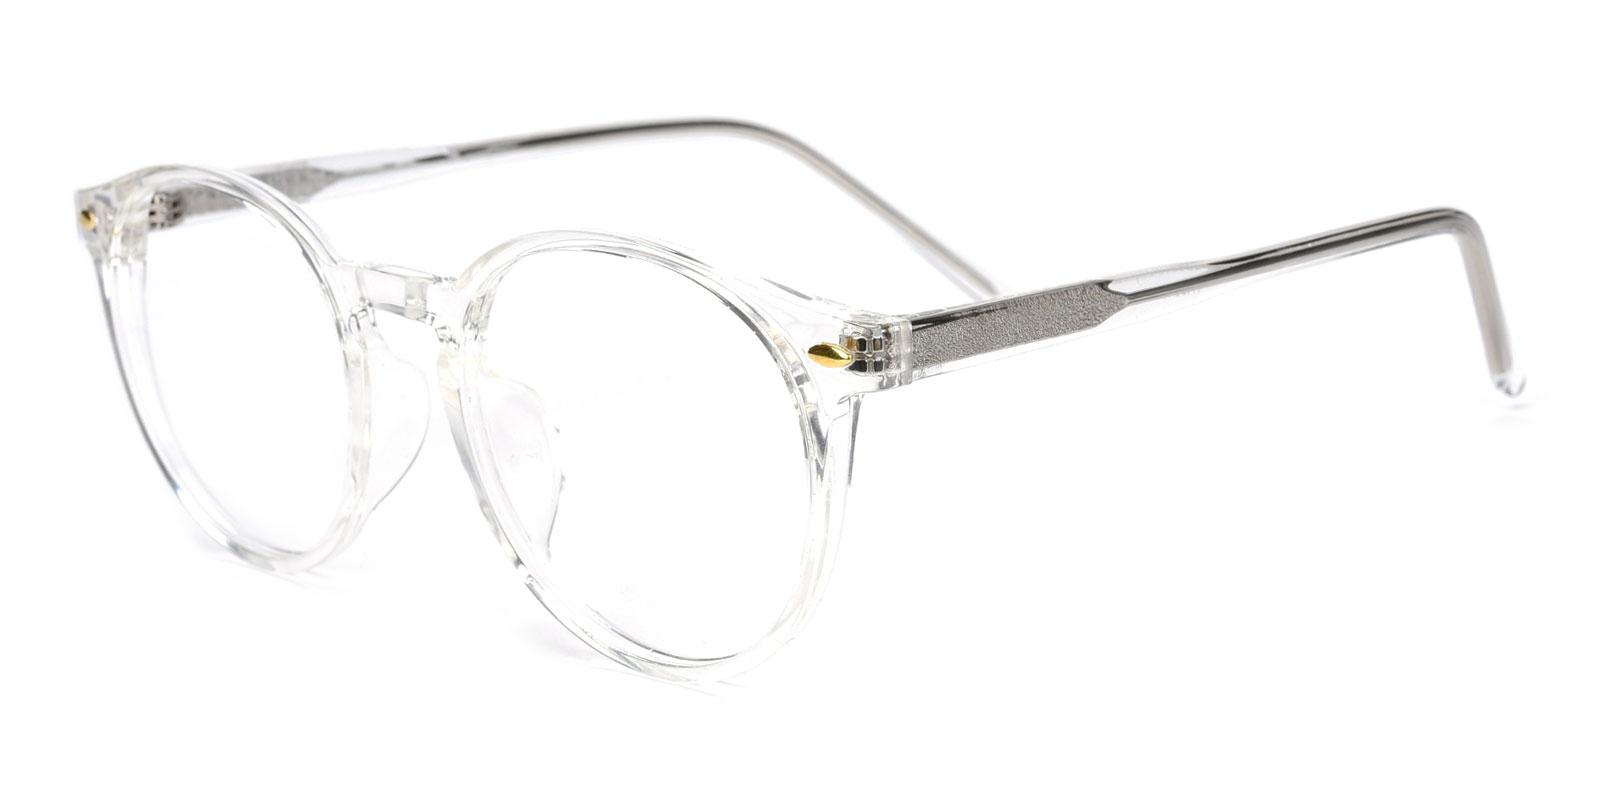 Cain-Translucent-Round-TR-Eyeglasses-detail